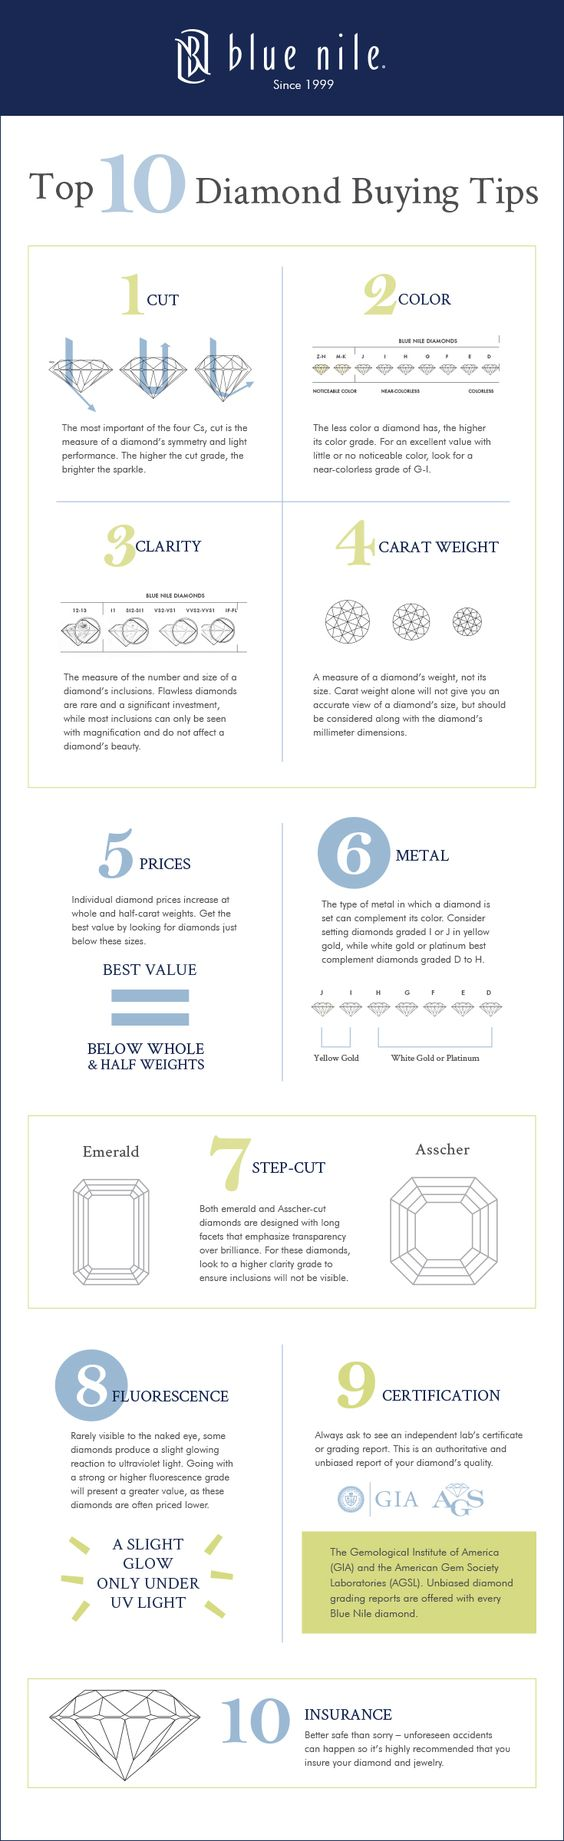 Looking to buy some bling? Check out the Top 10 Diamond Buying Tips from bluenile.com!